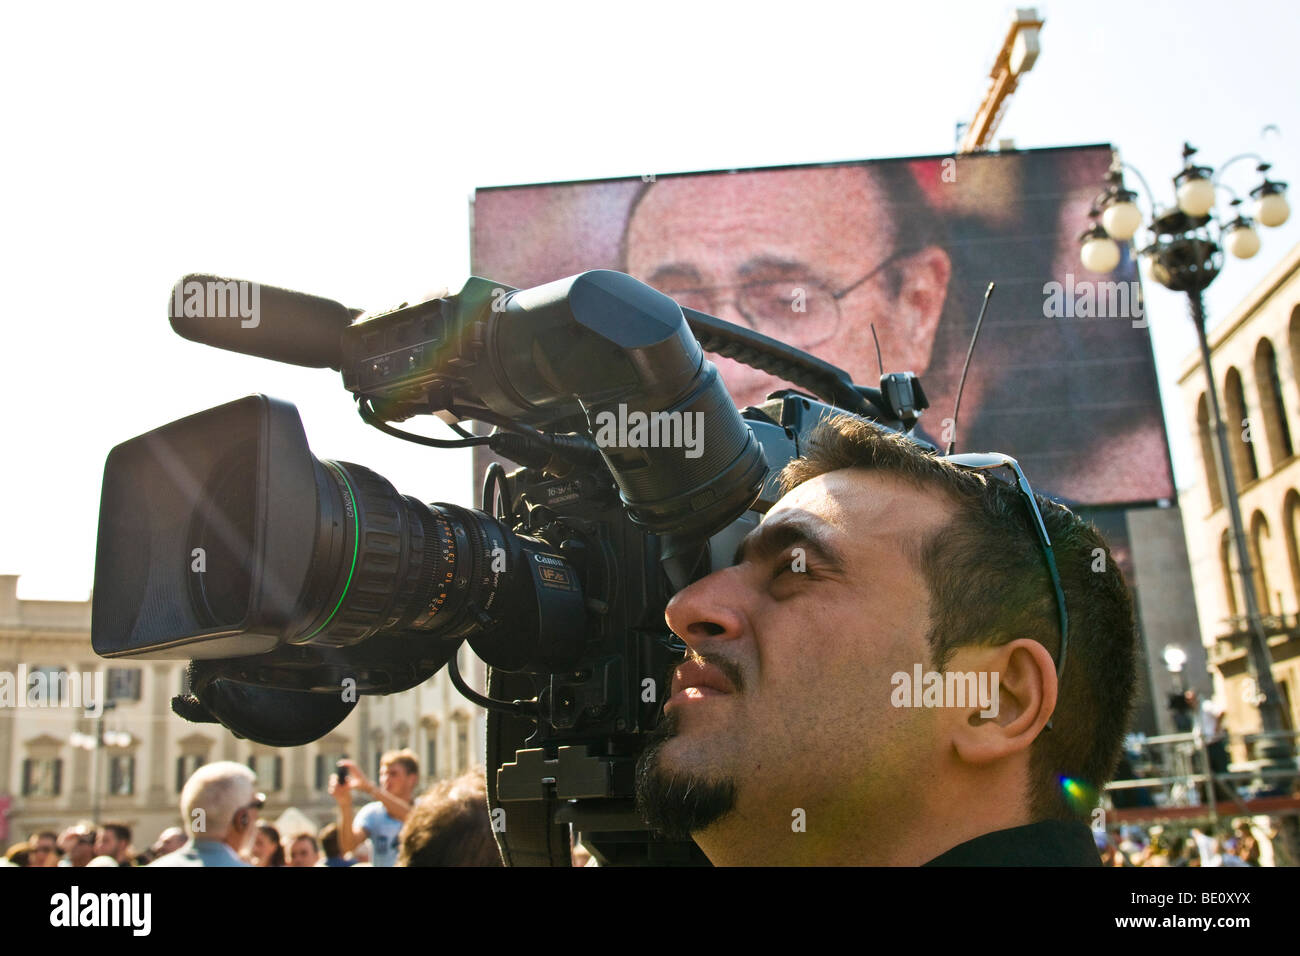 Cameramen, Funeral of Mike Bongiorno, Milan, ITALY, 12 september 2009 - Stock Image